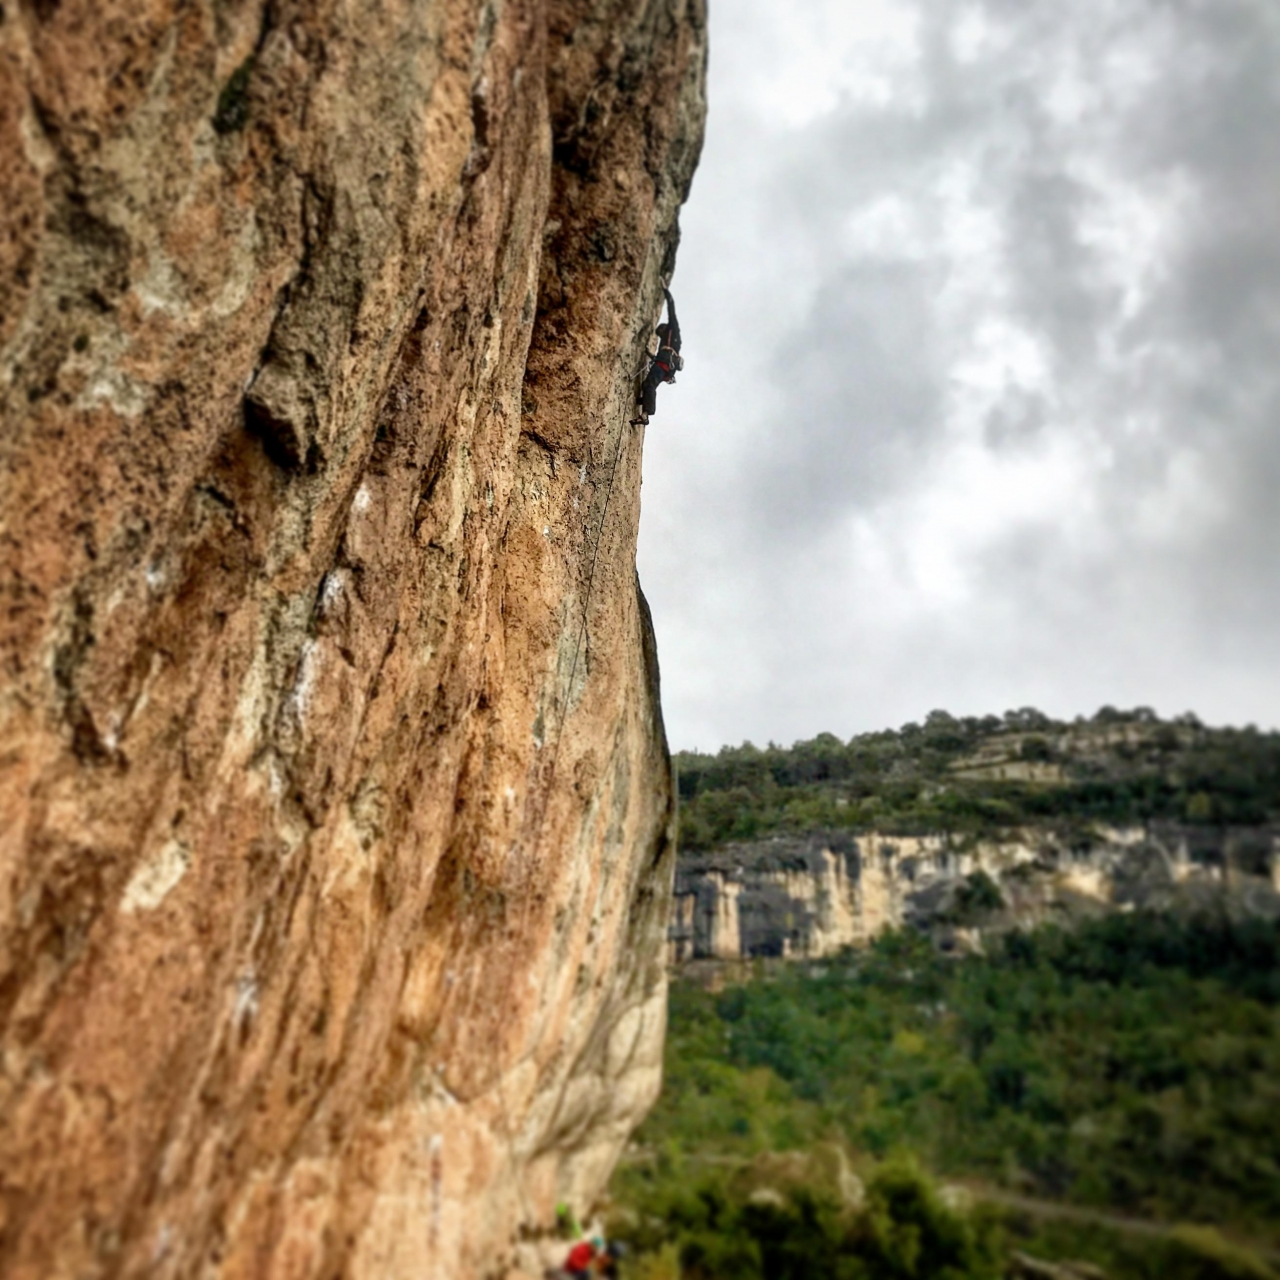 A picture from Siurana by Selim Özkul